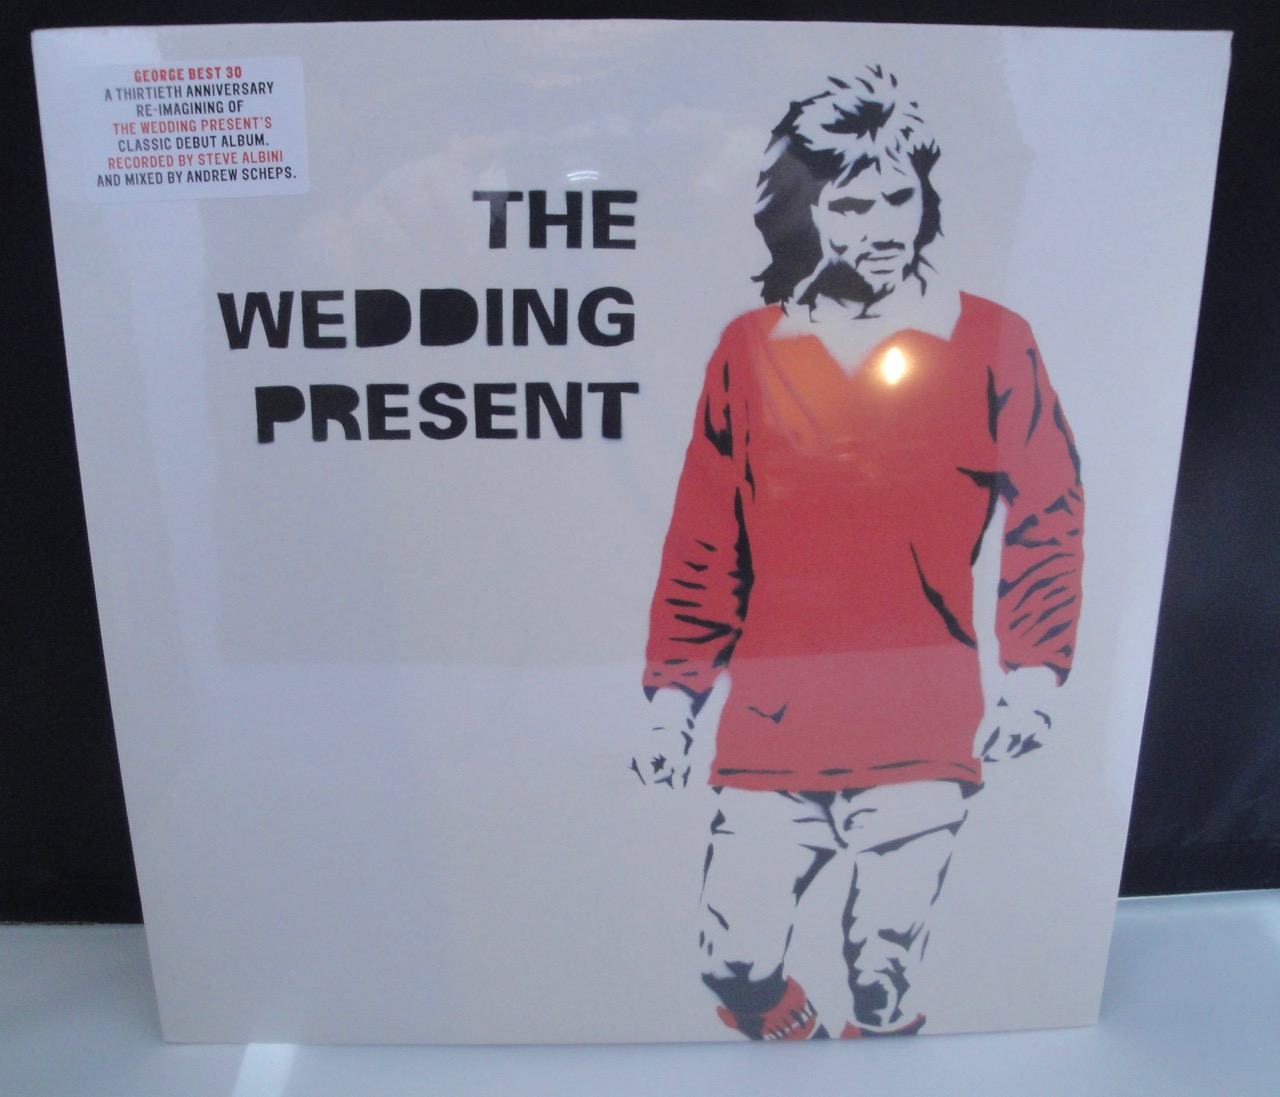 The Wedding Present - George Best 30 - 2017 Vinyl, LP with CD